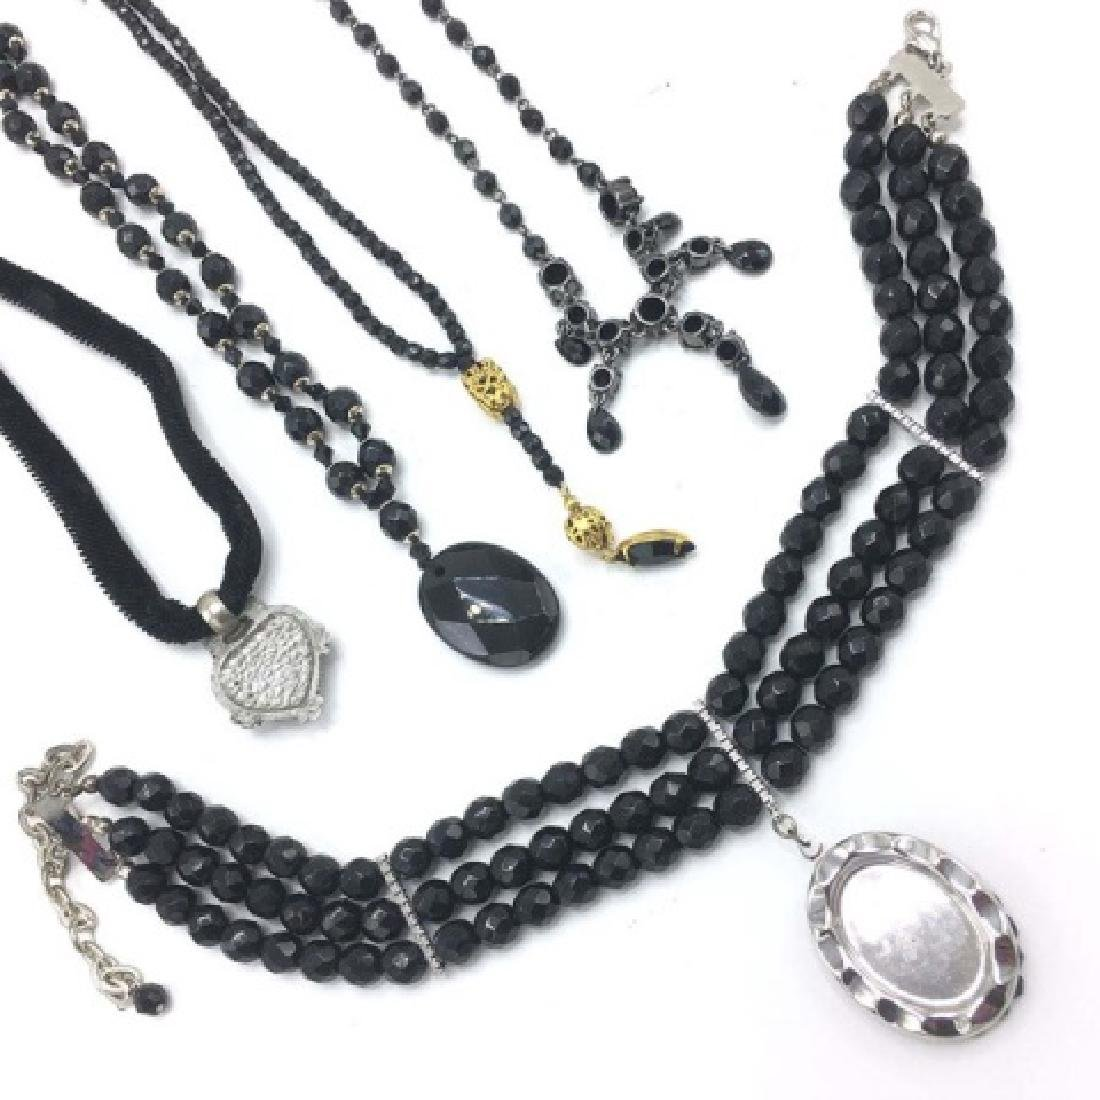 Vintage Victorian Style / Mourning Style Necklaces - 2